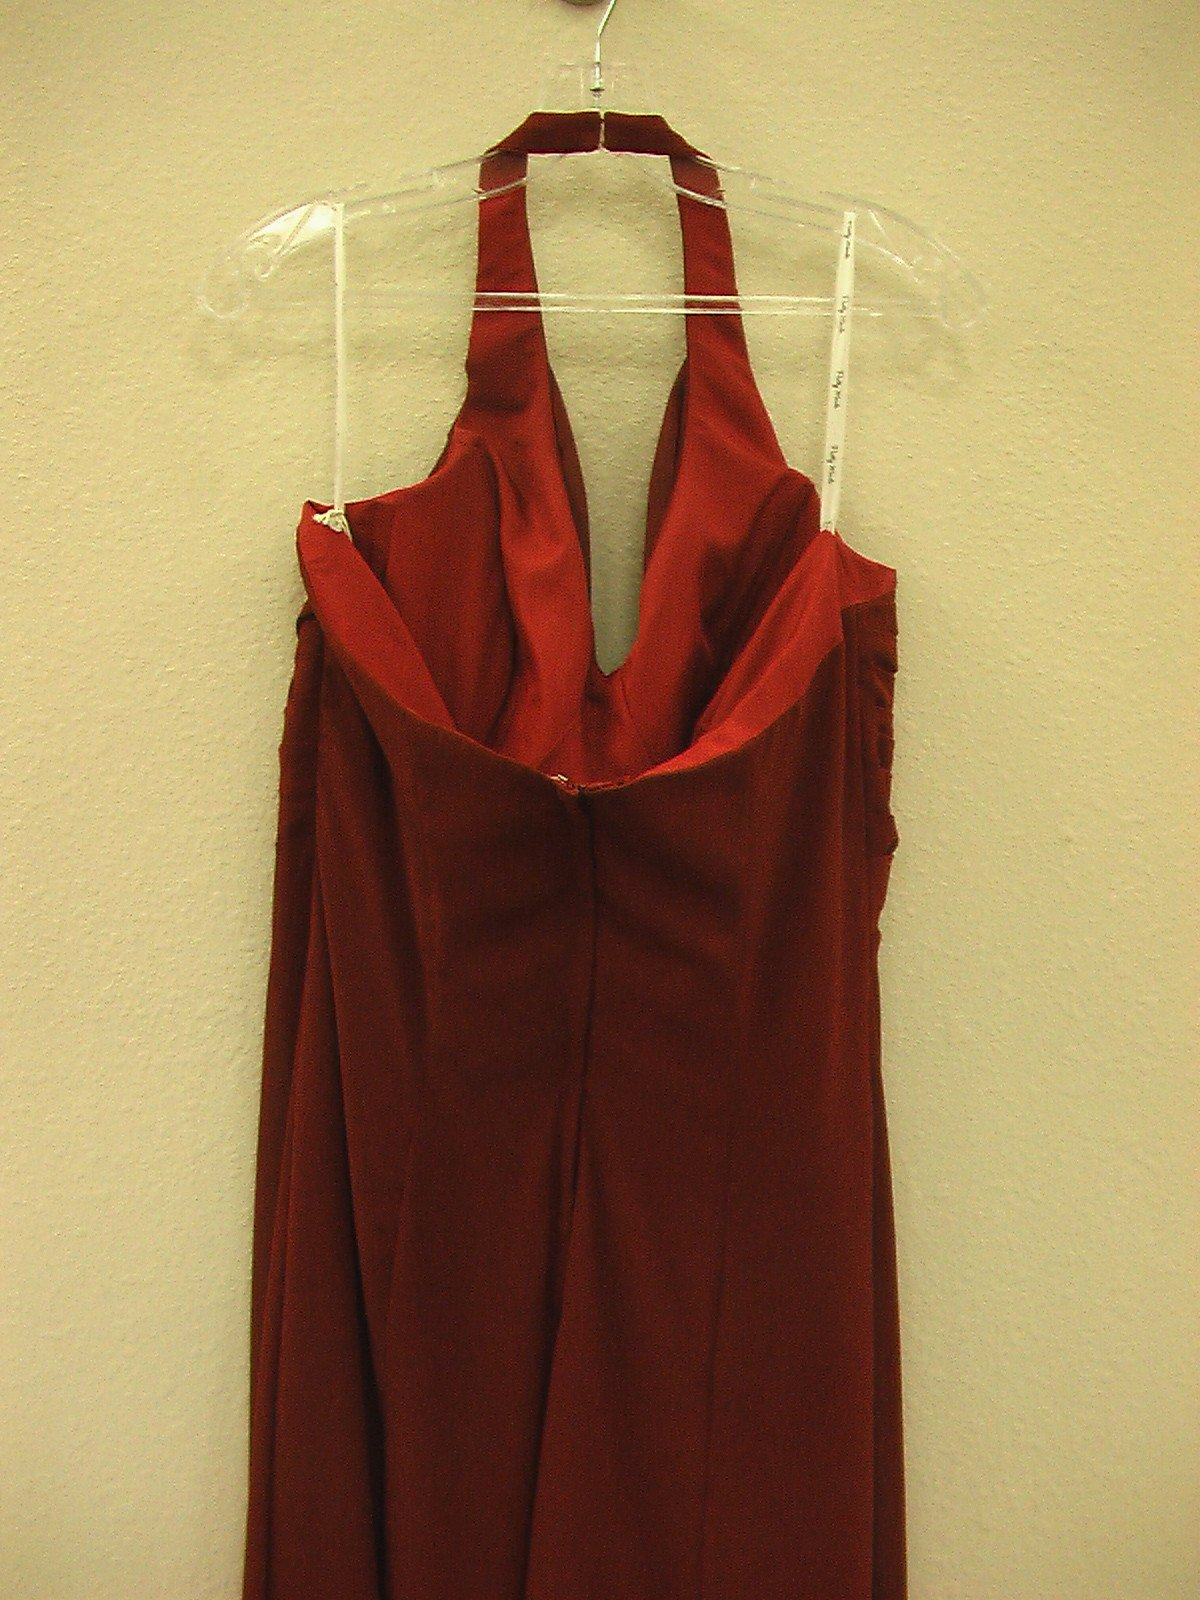 Pretty Maids 22452 Claret size 14 In Stock Bridesmaid Dress - Tom's Bridal